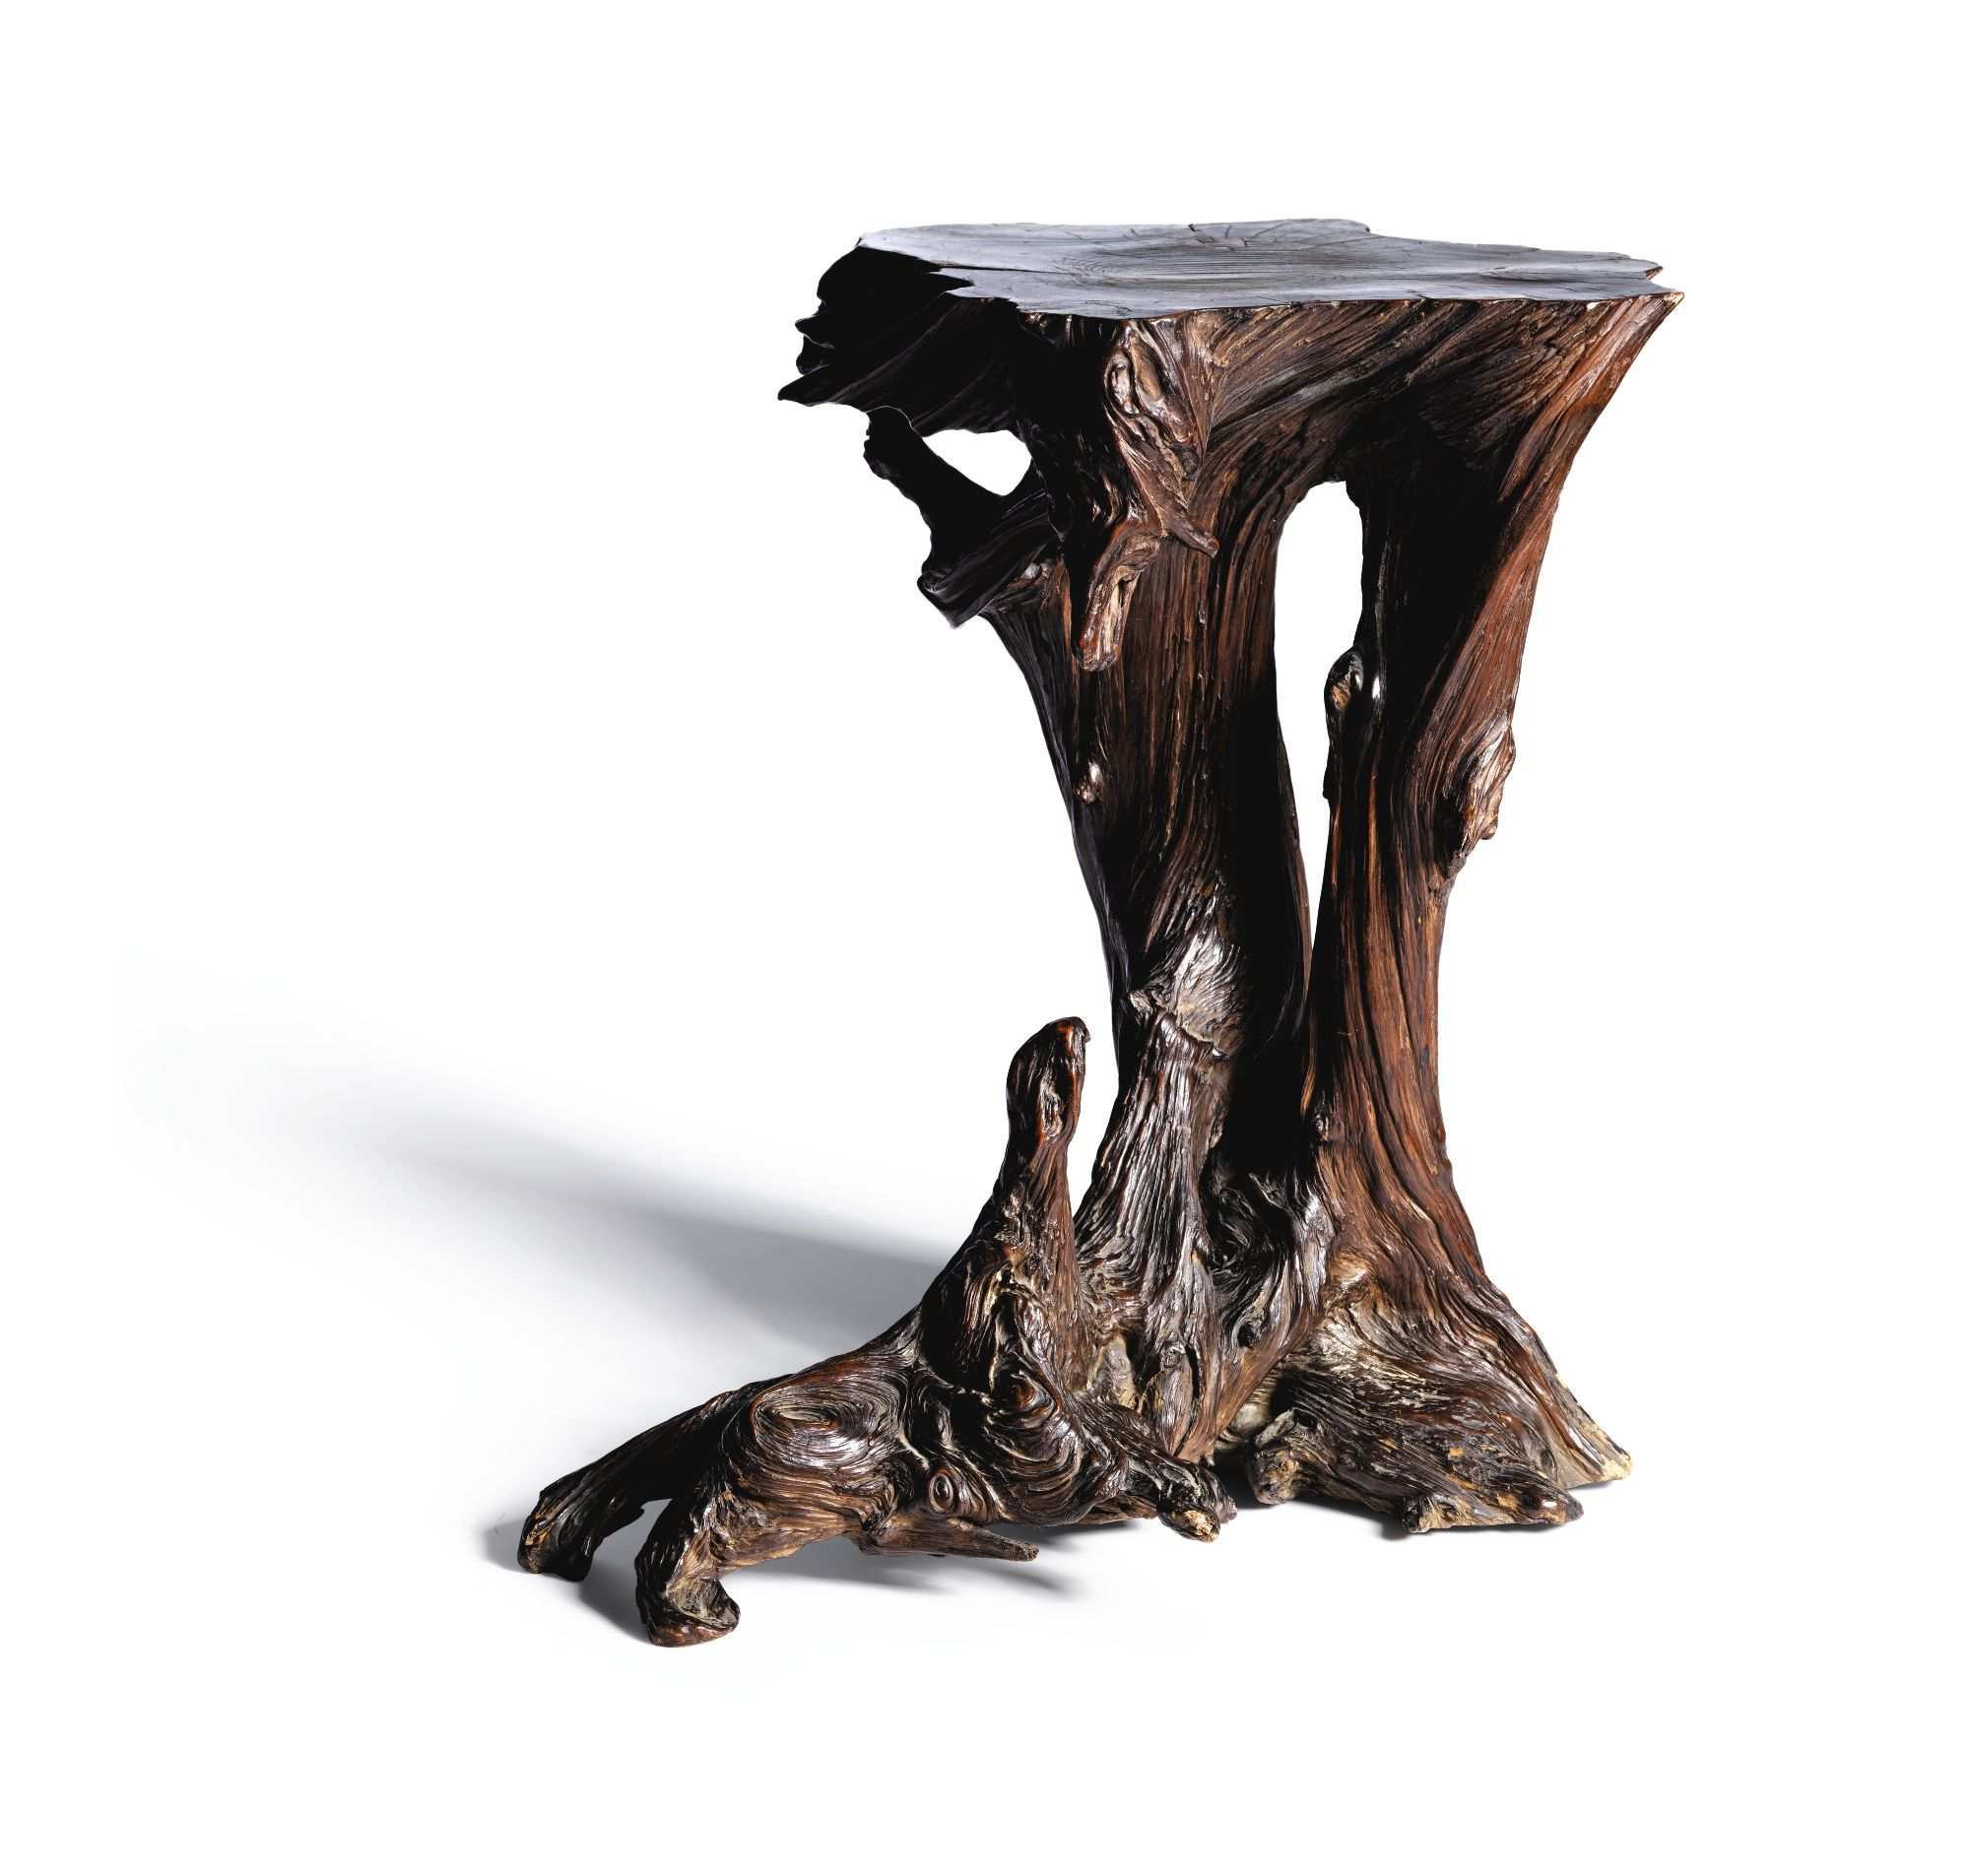 A Tree Root Table, Qing Dynasty | Chinese Scholaru0027s Objects | Pinterest |  Trees, A Tree And Auction